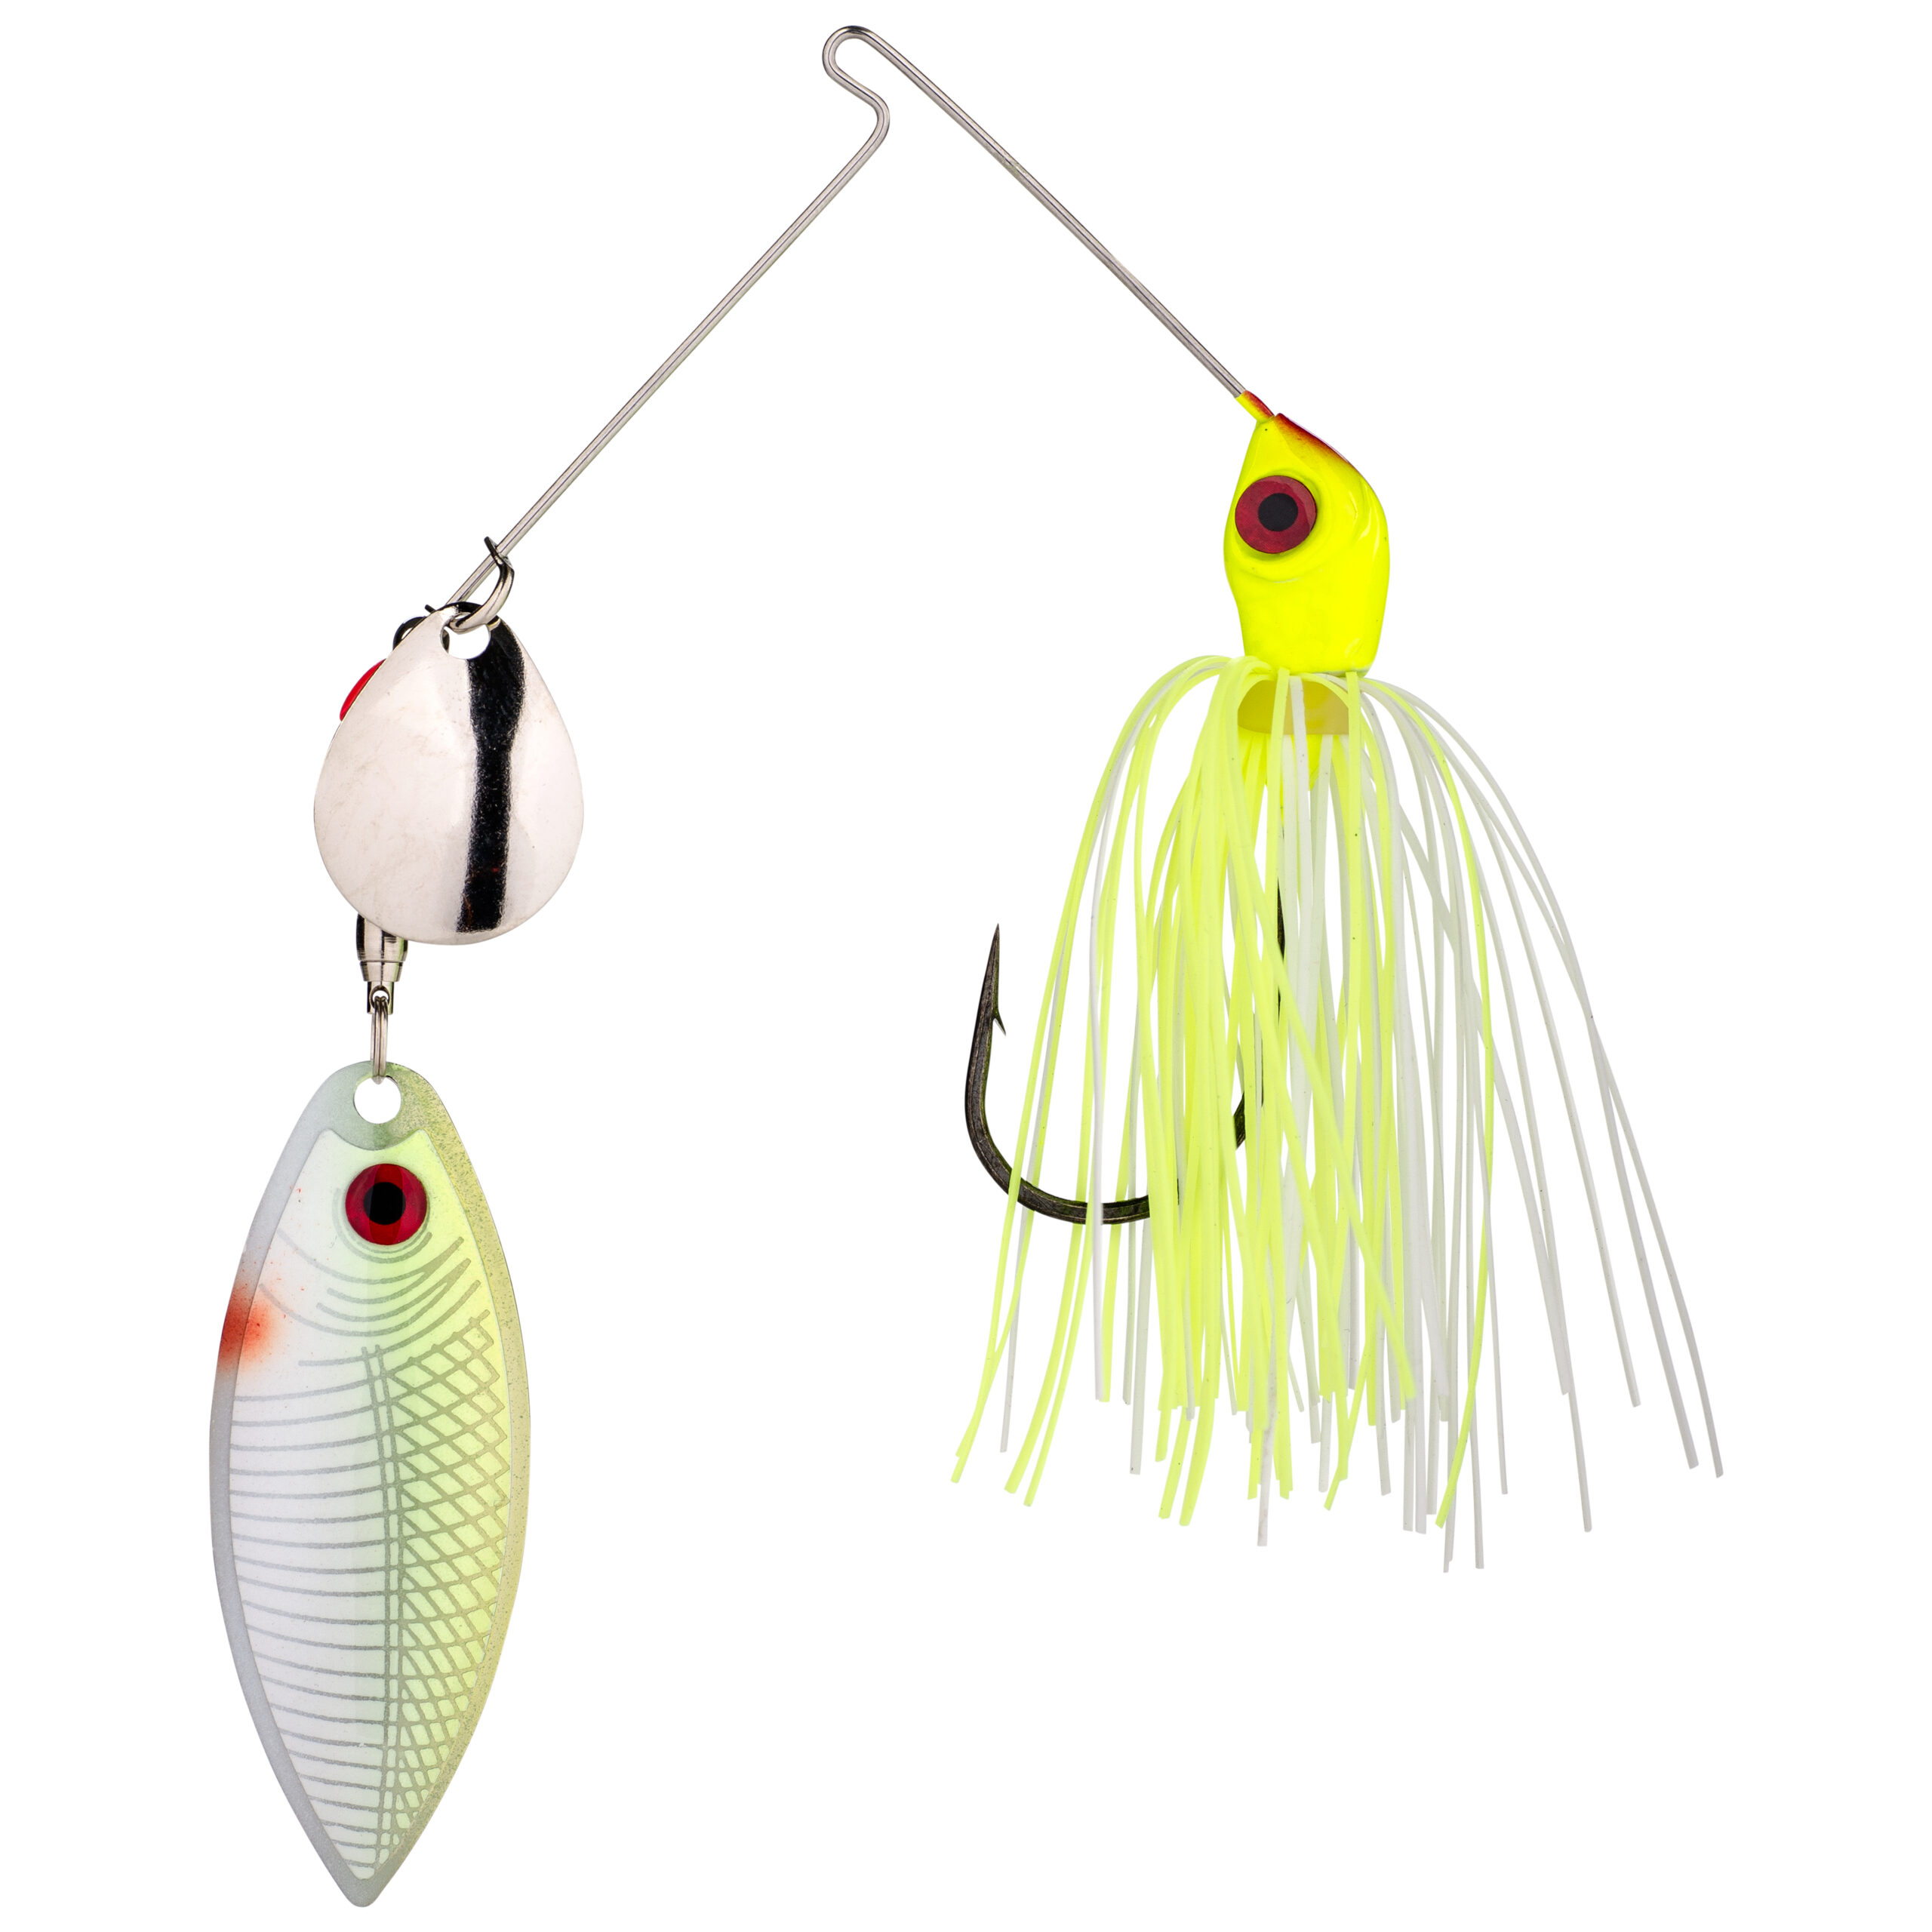 Strike King Lures – Spinnerbaits – Colorado Willow – Red Eyed Special - 3/8oz - REYE38CW-3 - Chartreuse White